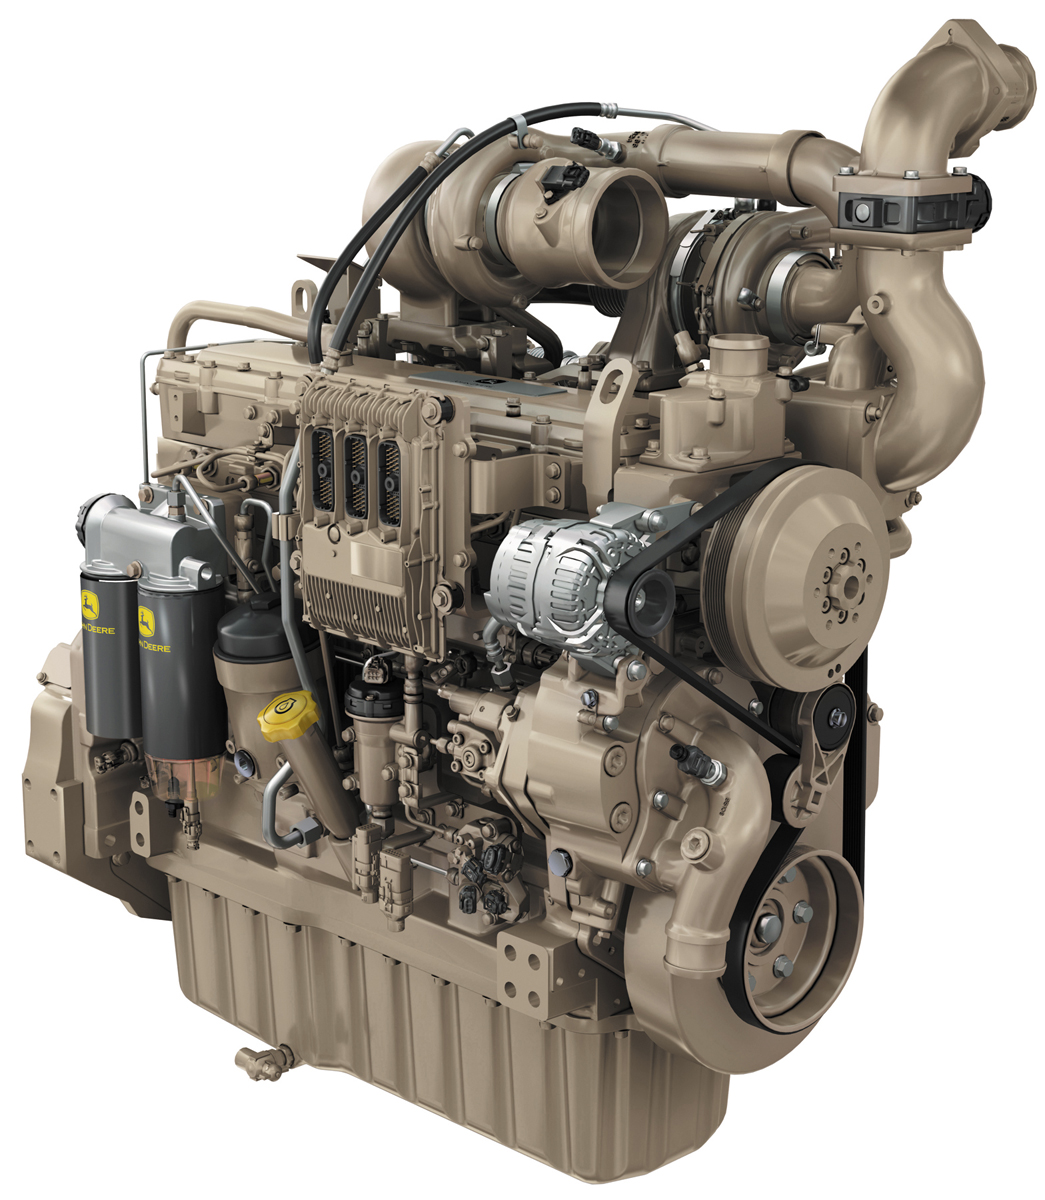 John Deere Industrial Engines Parts Service | Melton Industries